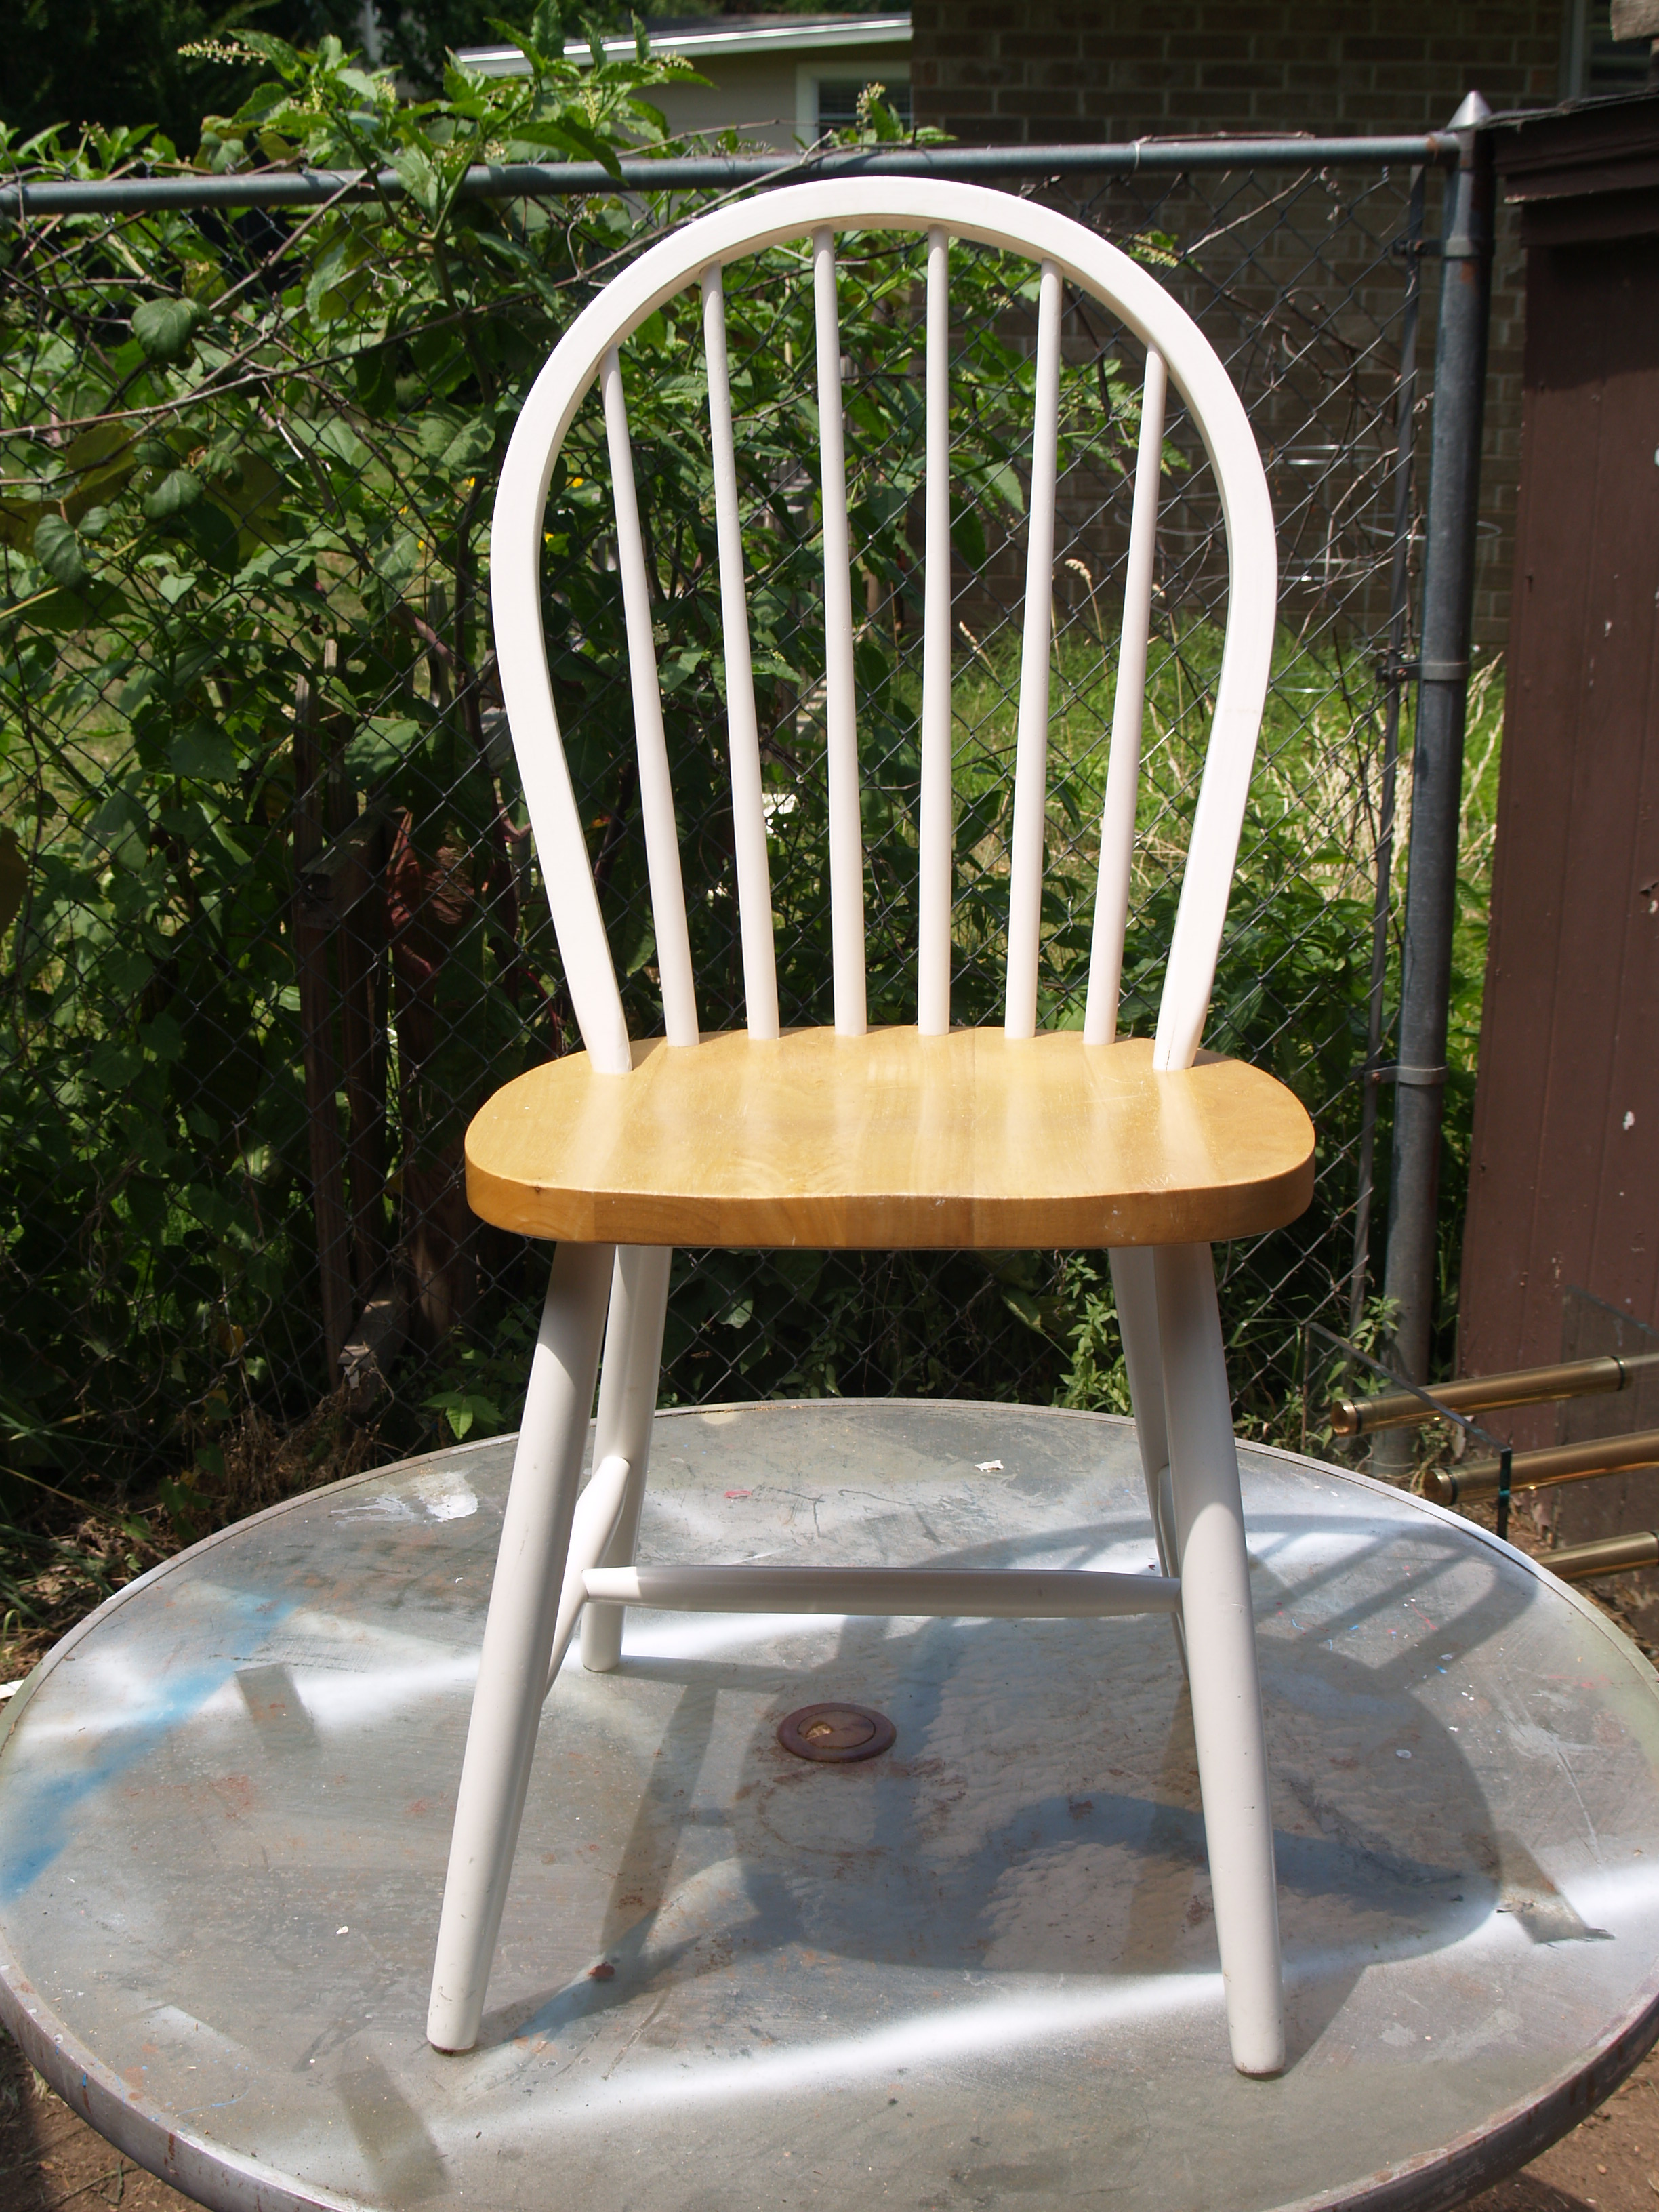 Camo Chair before